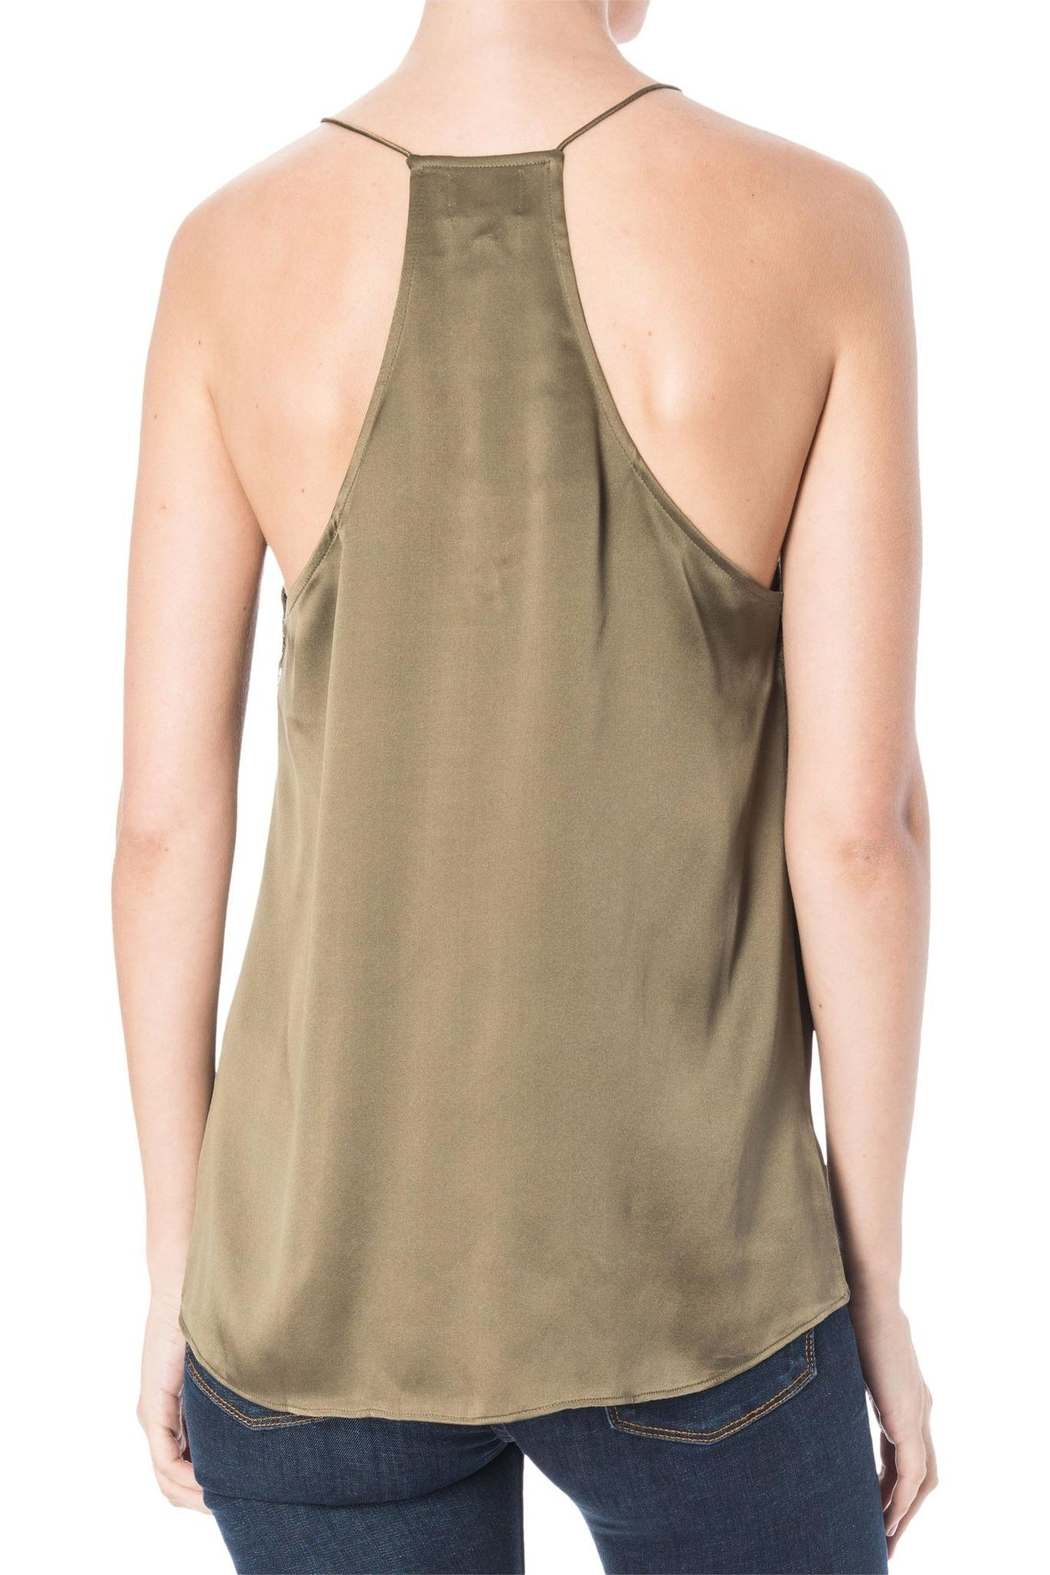 Cami NYC Racerback Charmeuse Cami Top - Front Full Image